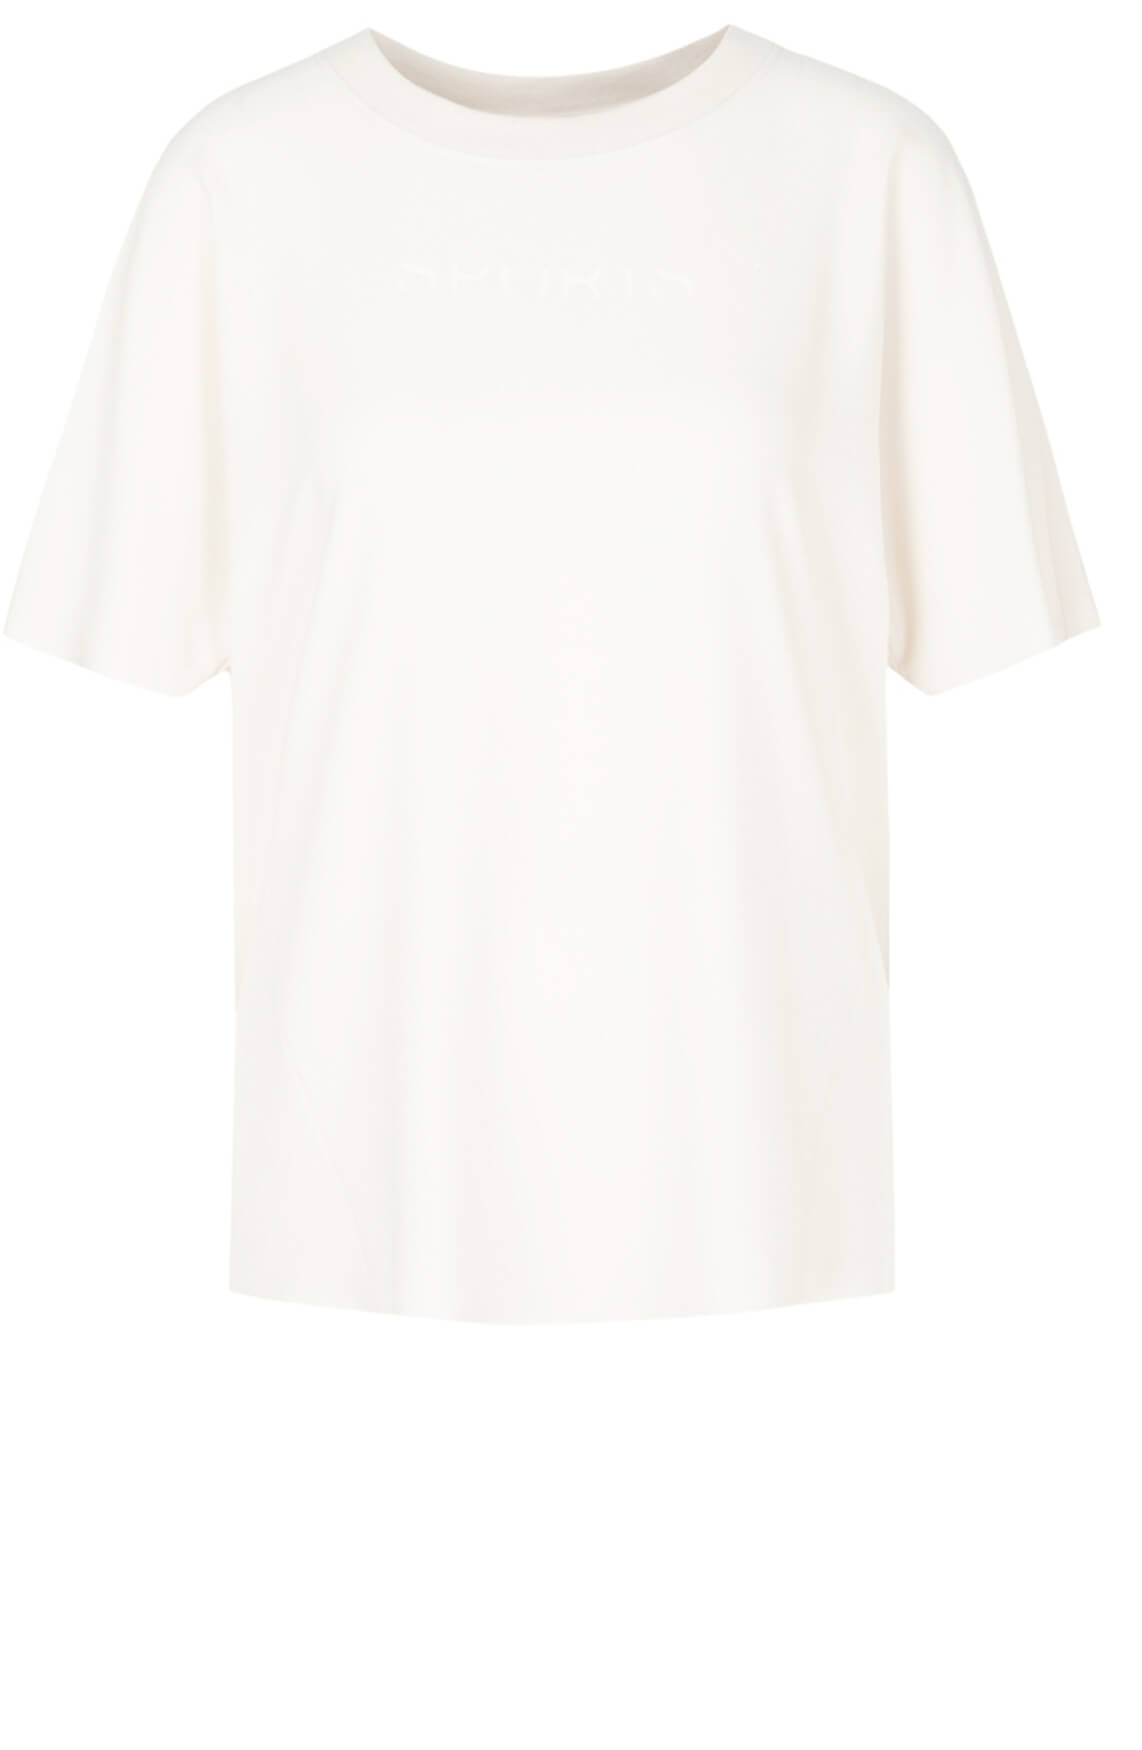 Marccain Sports Dames Clean blouseshirt wit